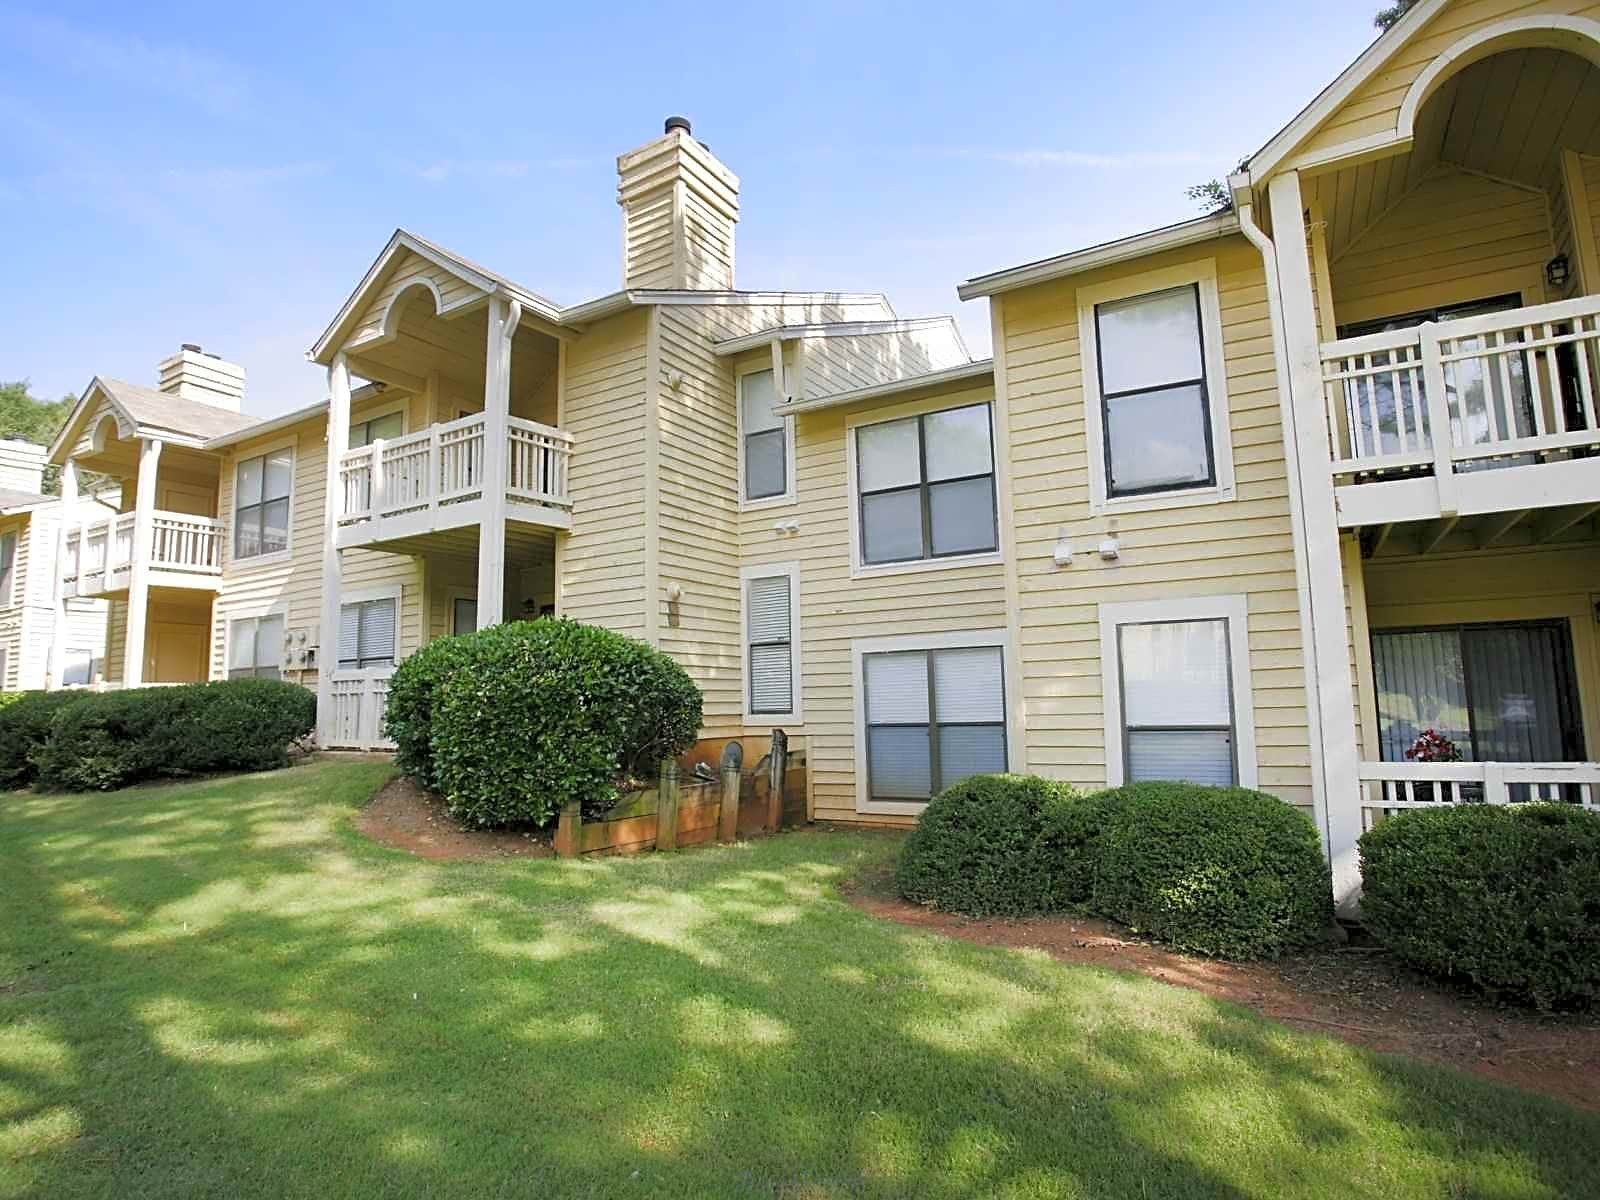 Photo: Charlotte Apartment for Rent - $586.00 / month; 1 Bd & 1 Ba